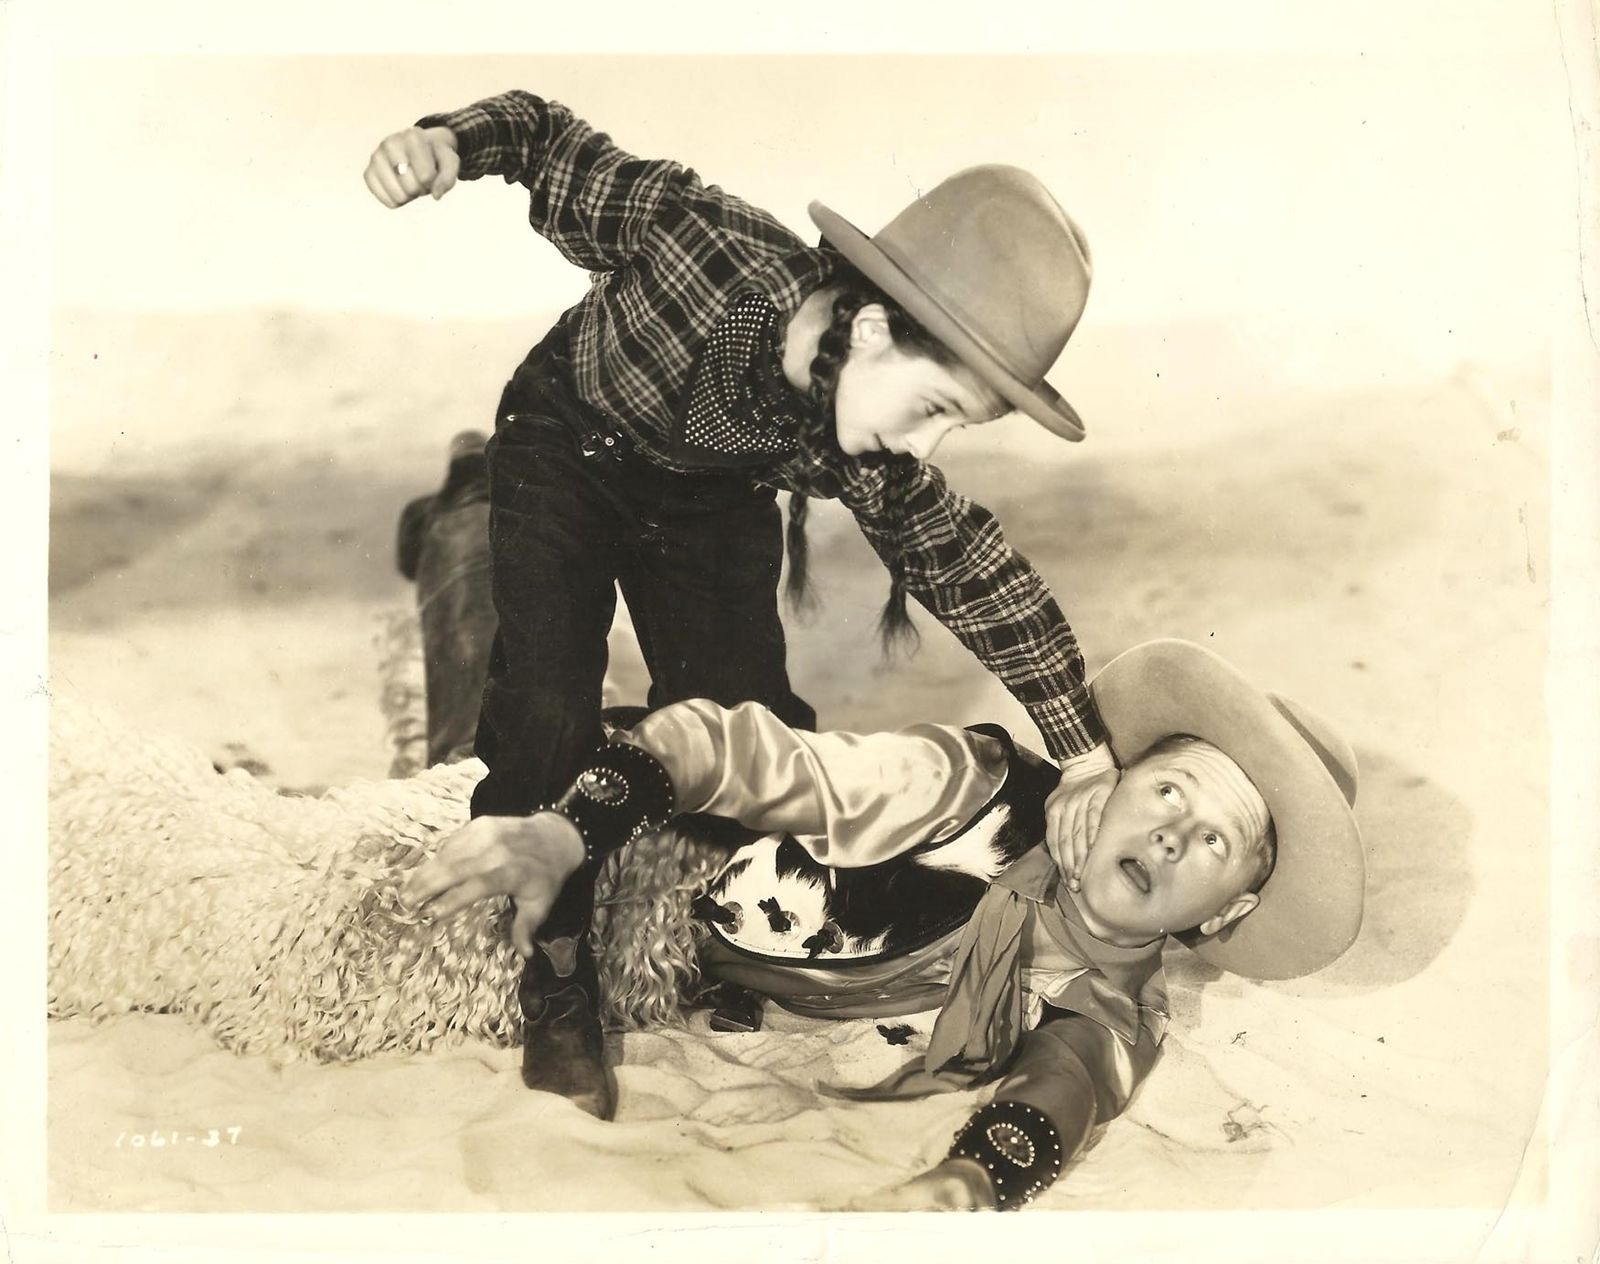 Mickey Rooney and Virginia Weidler in Out West with the Hardys (1938)